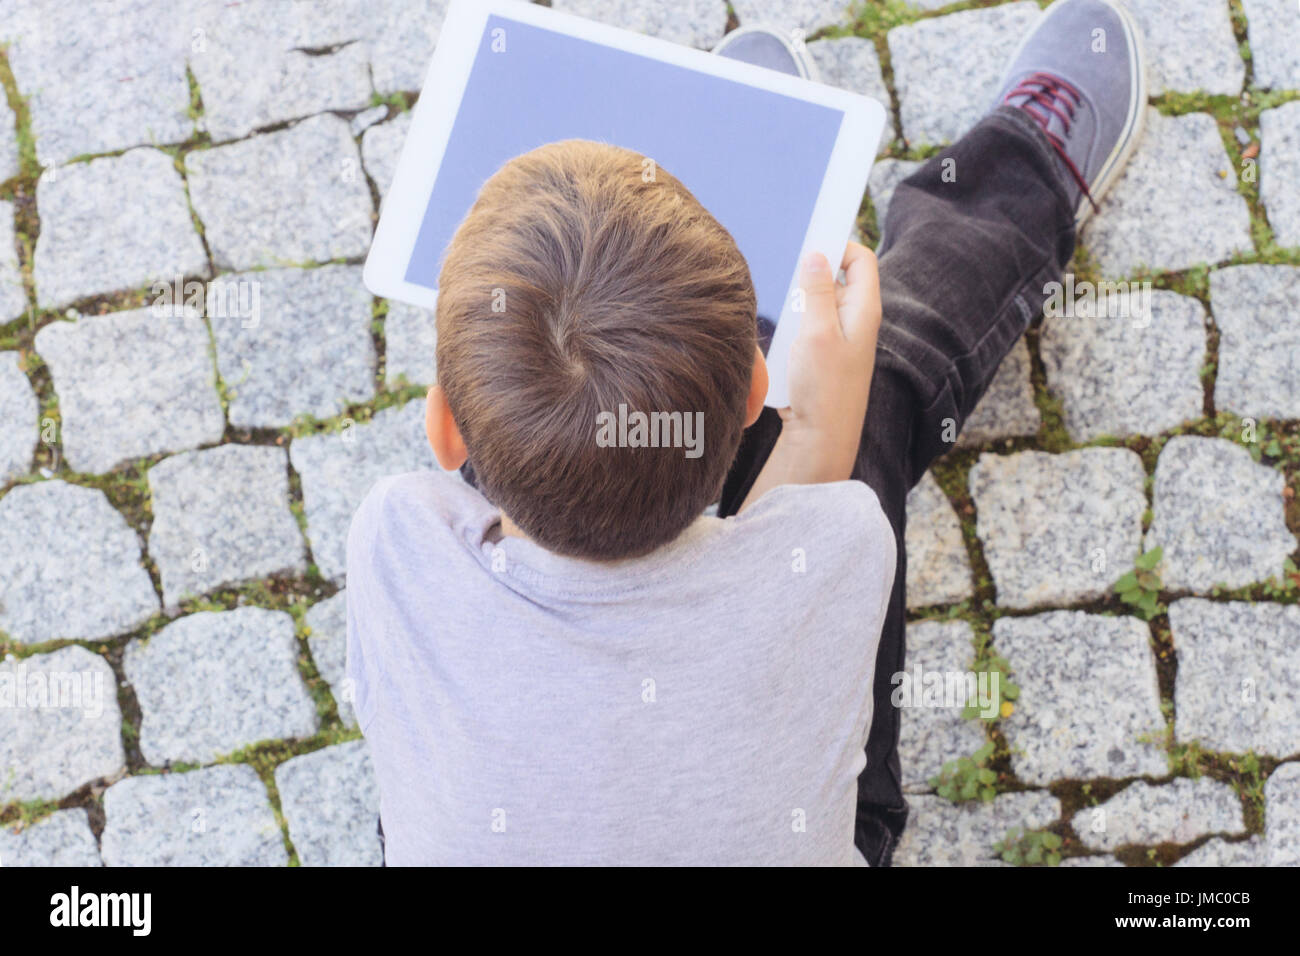 Young boy with tablet computer outdoors - Stock Image